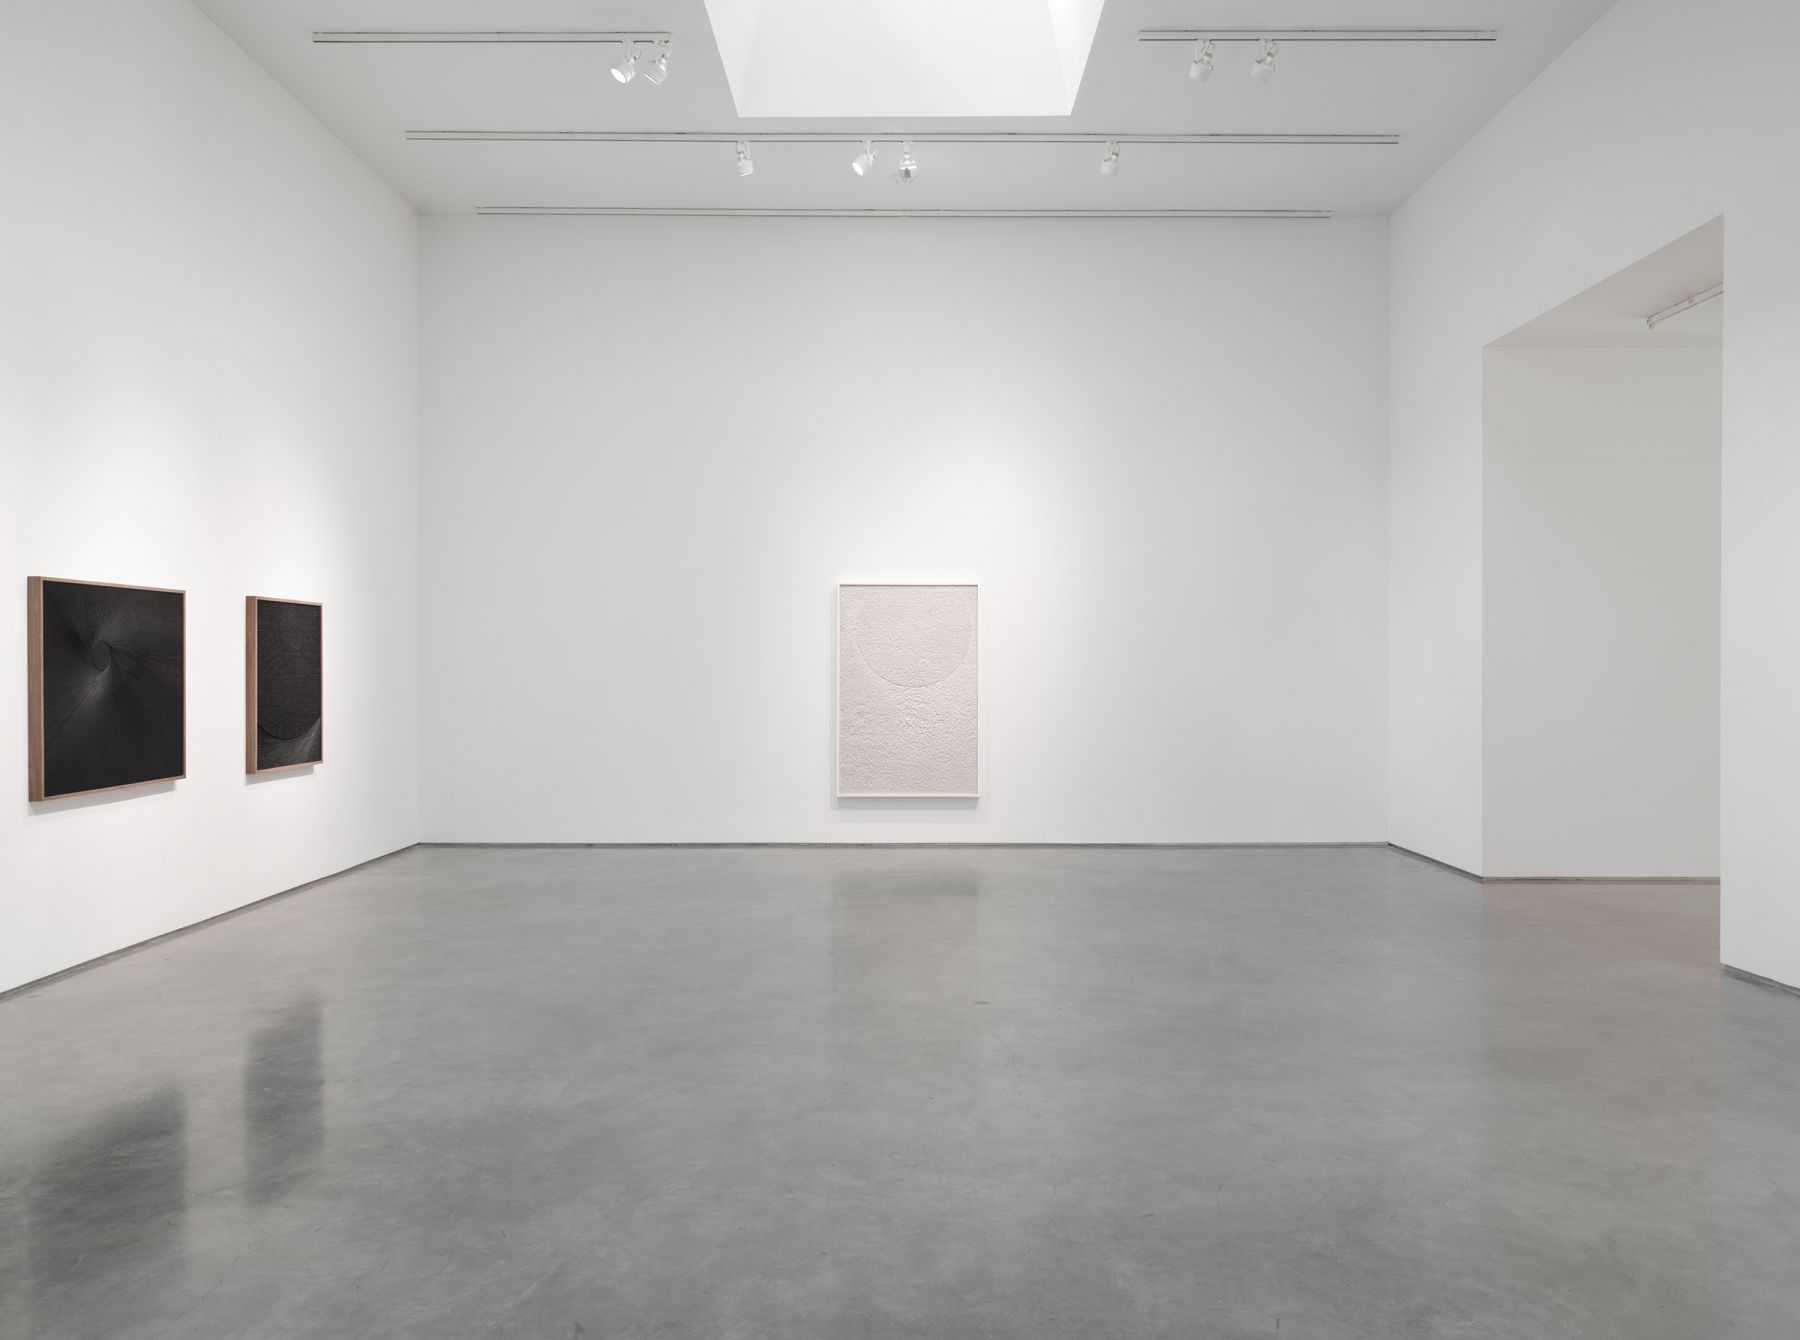 Anthony Pearson (Installation View), Marianne Boesky Gallery, 2015 – 2016